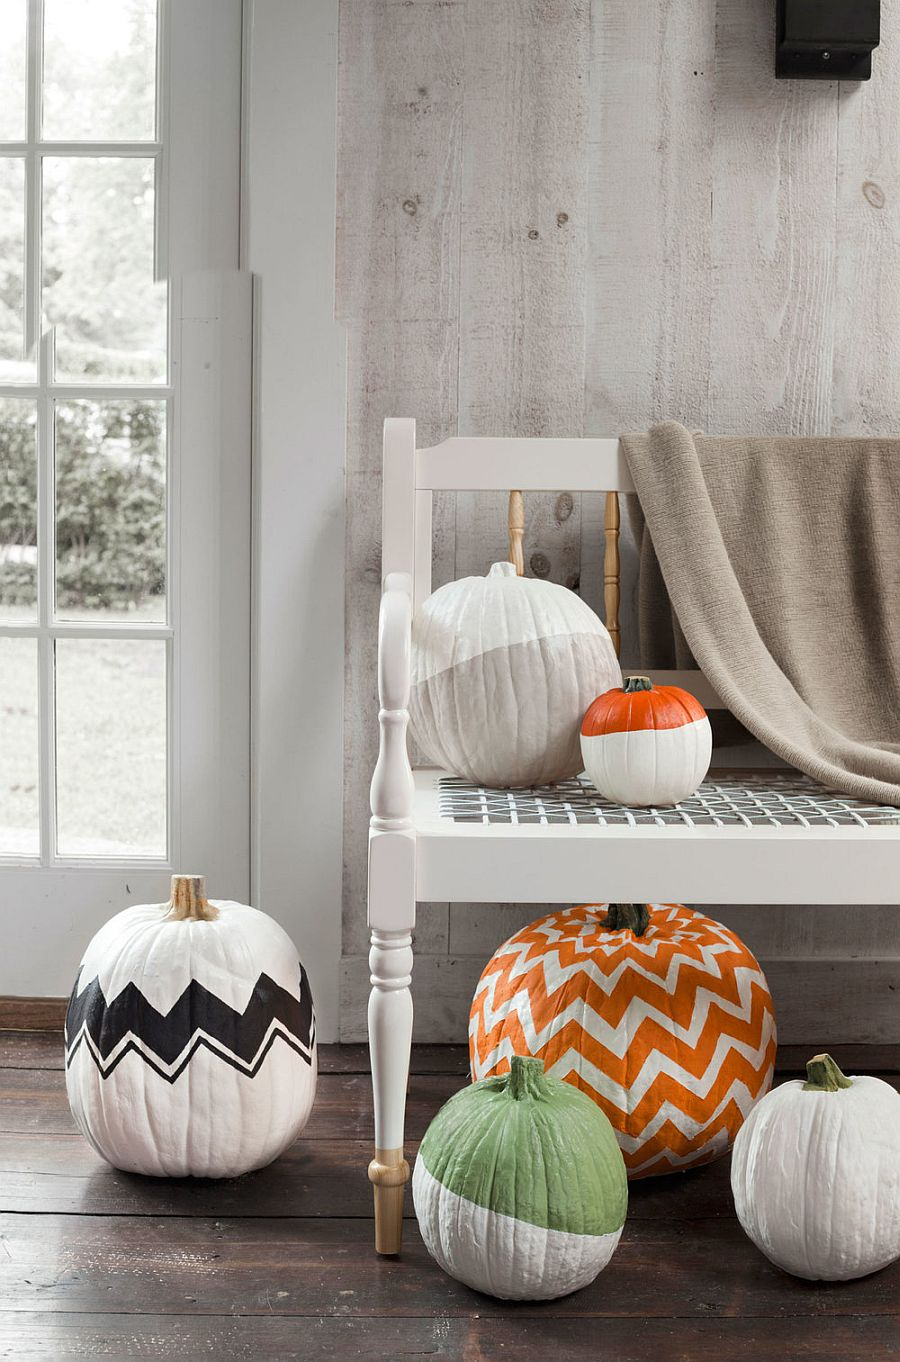 Snazzy and chic painted pumpkin idea for Halloween with geo style [From: Country Living]